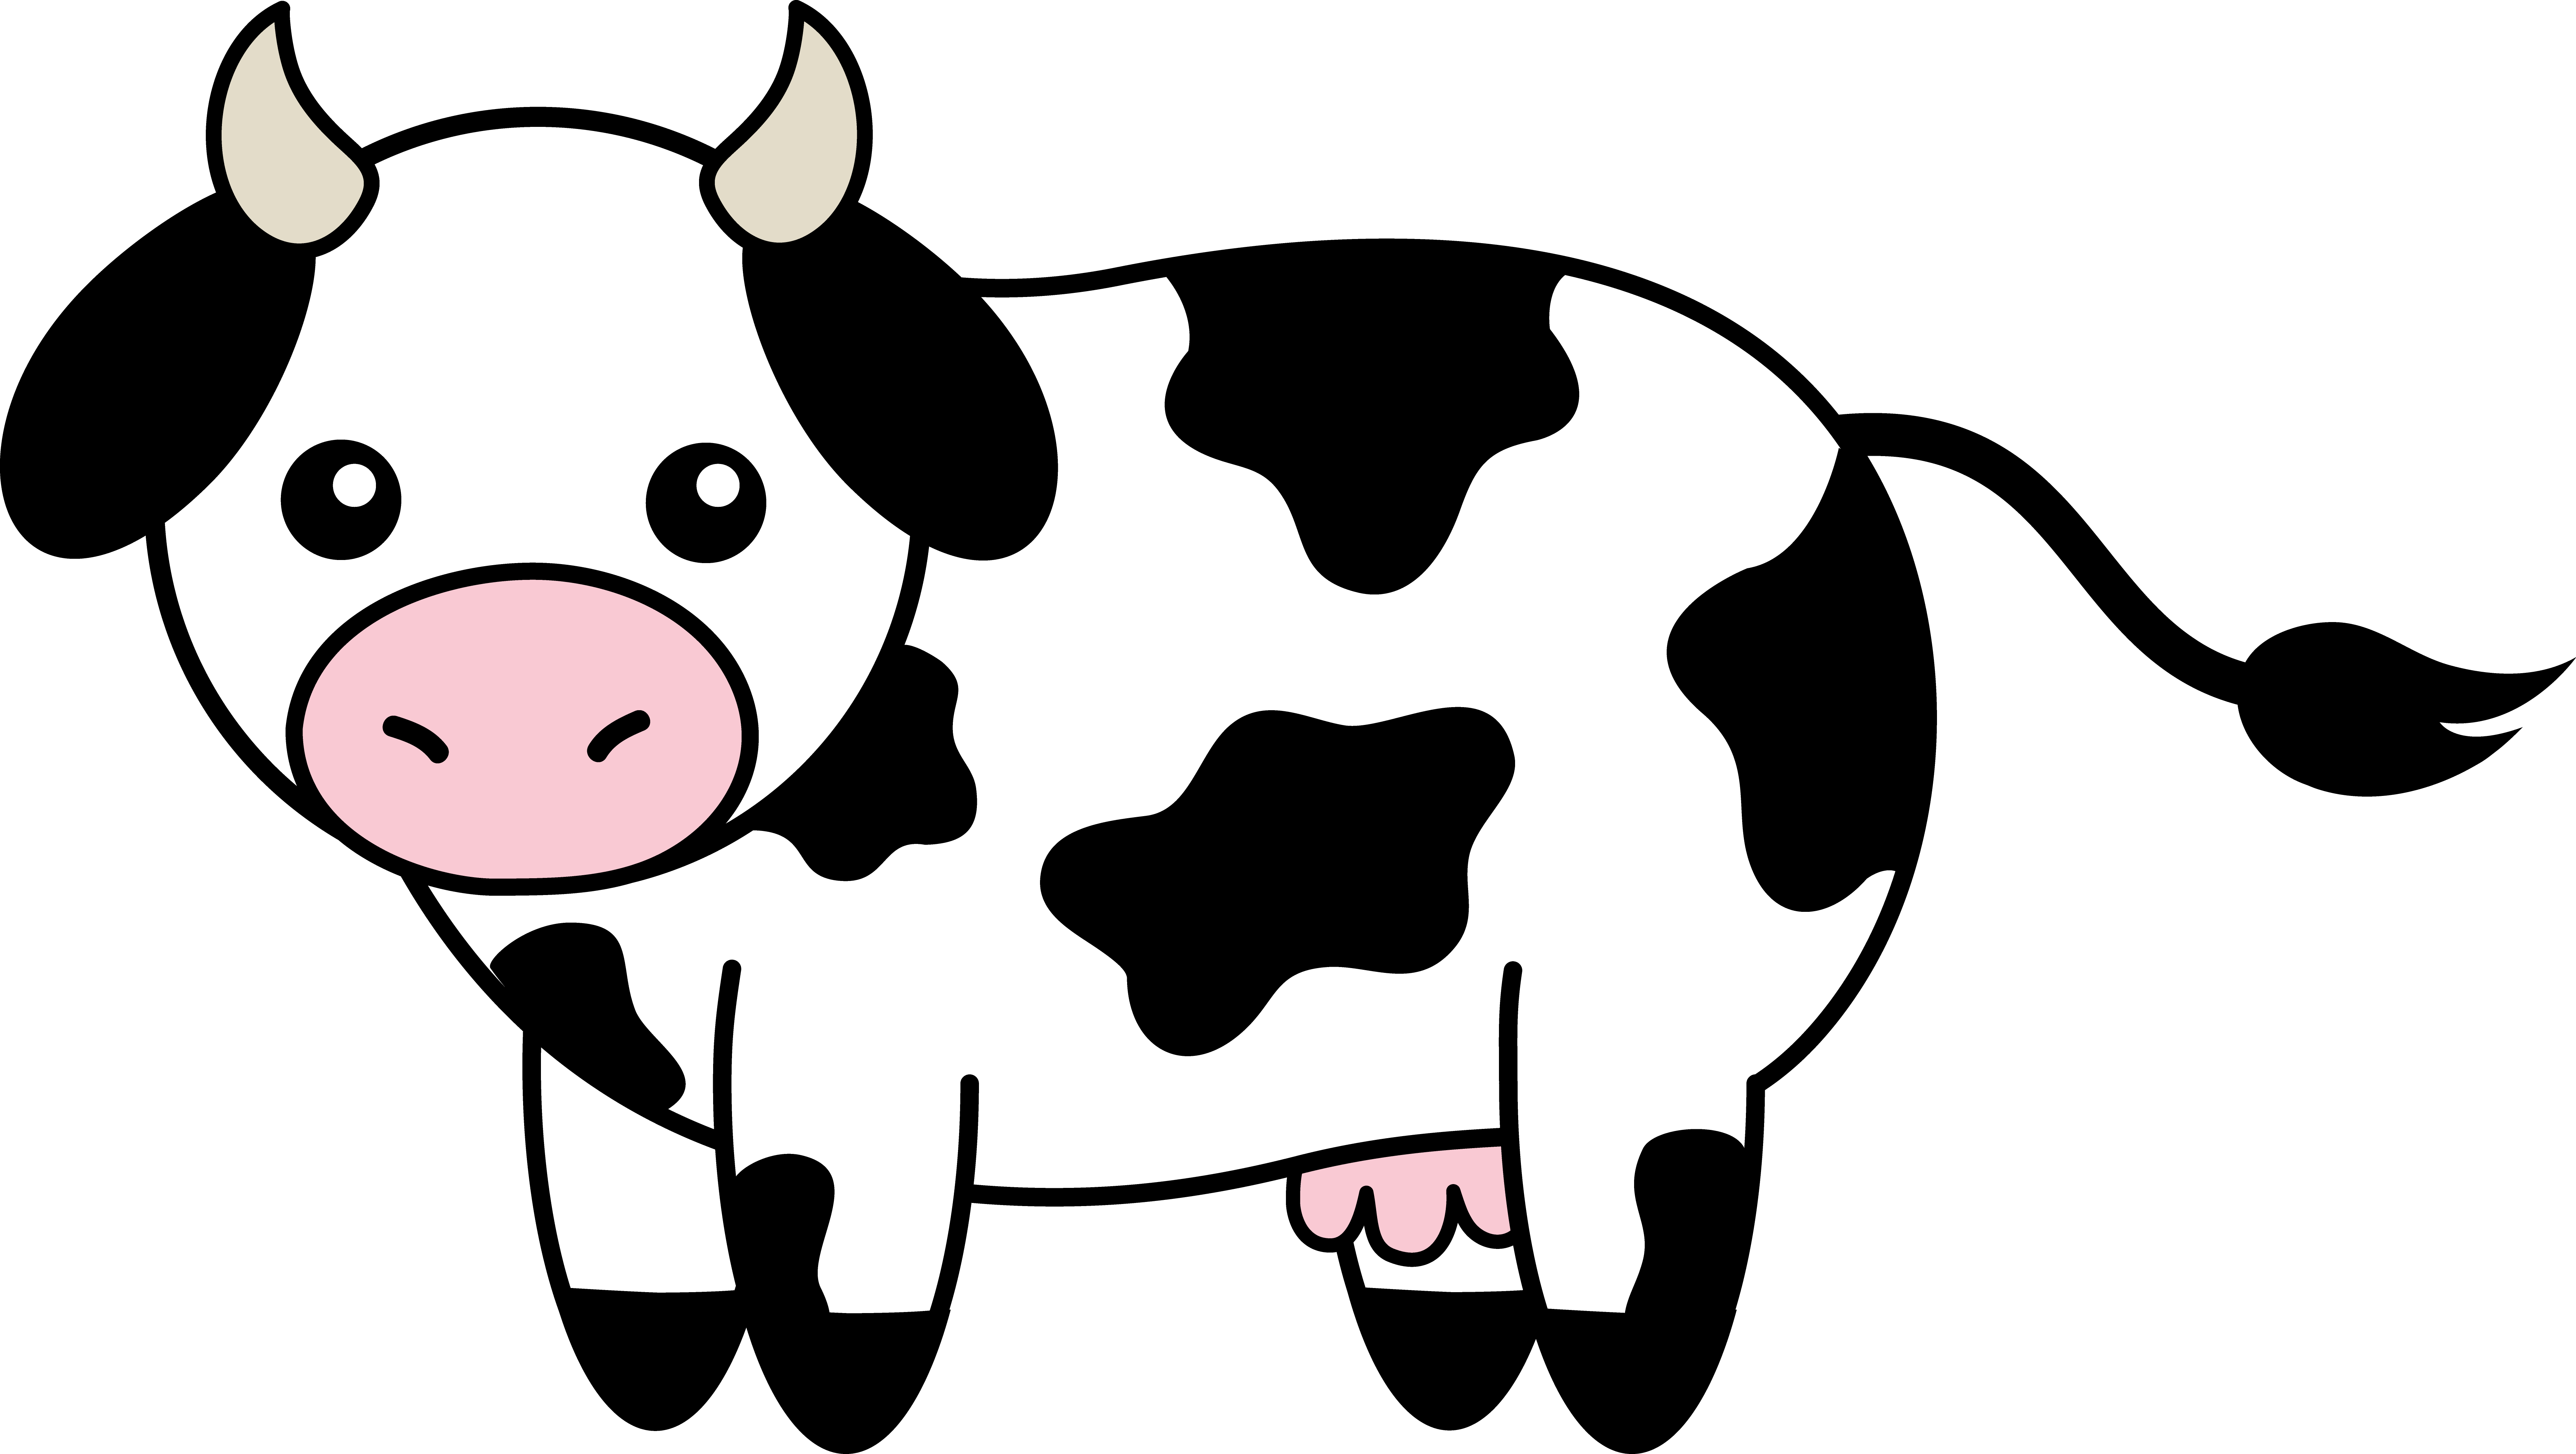 Cow clip art simple. Clipart black and white